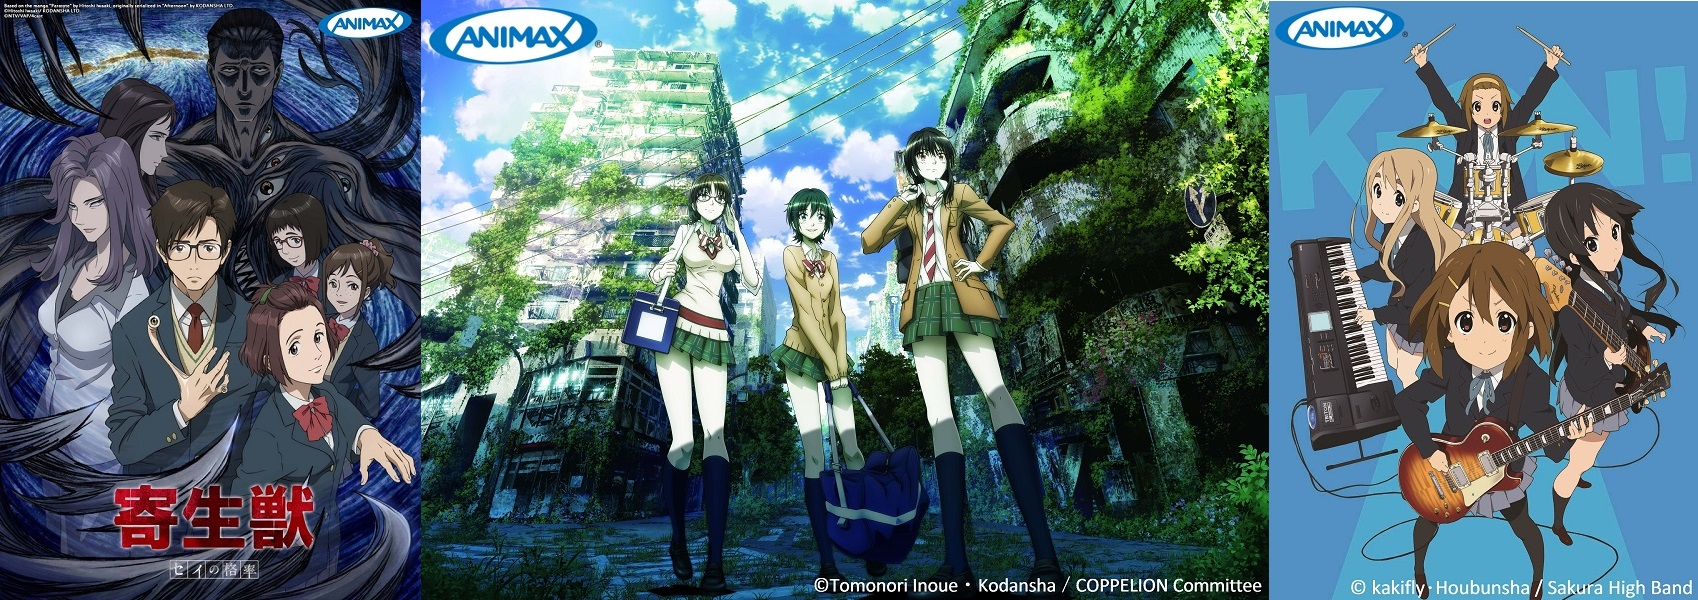 Animax's New Lineup for October 2014